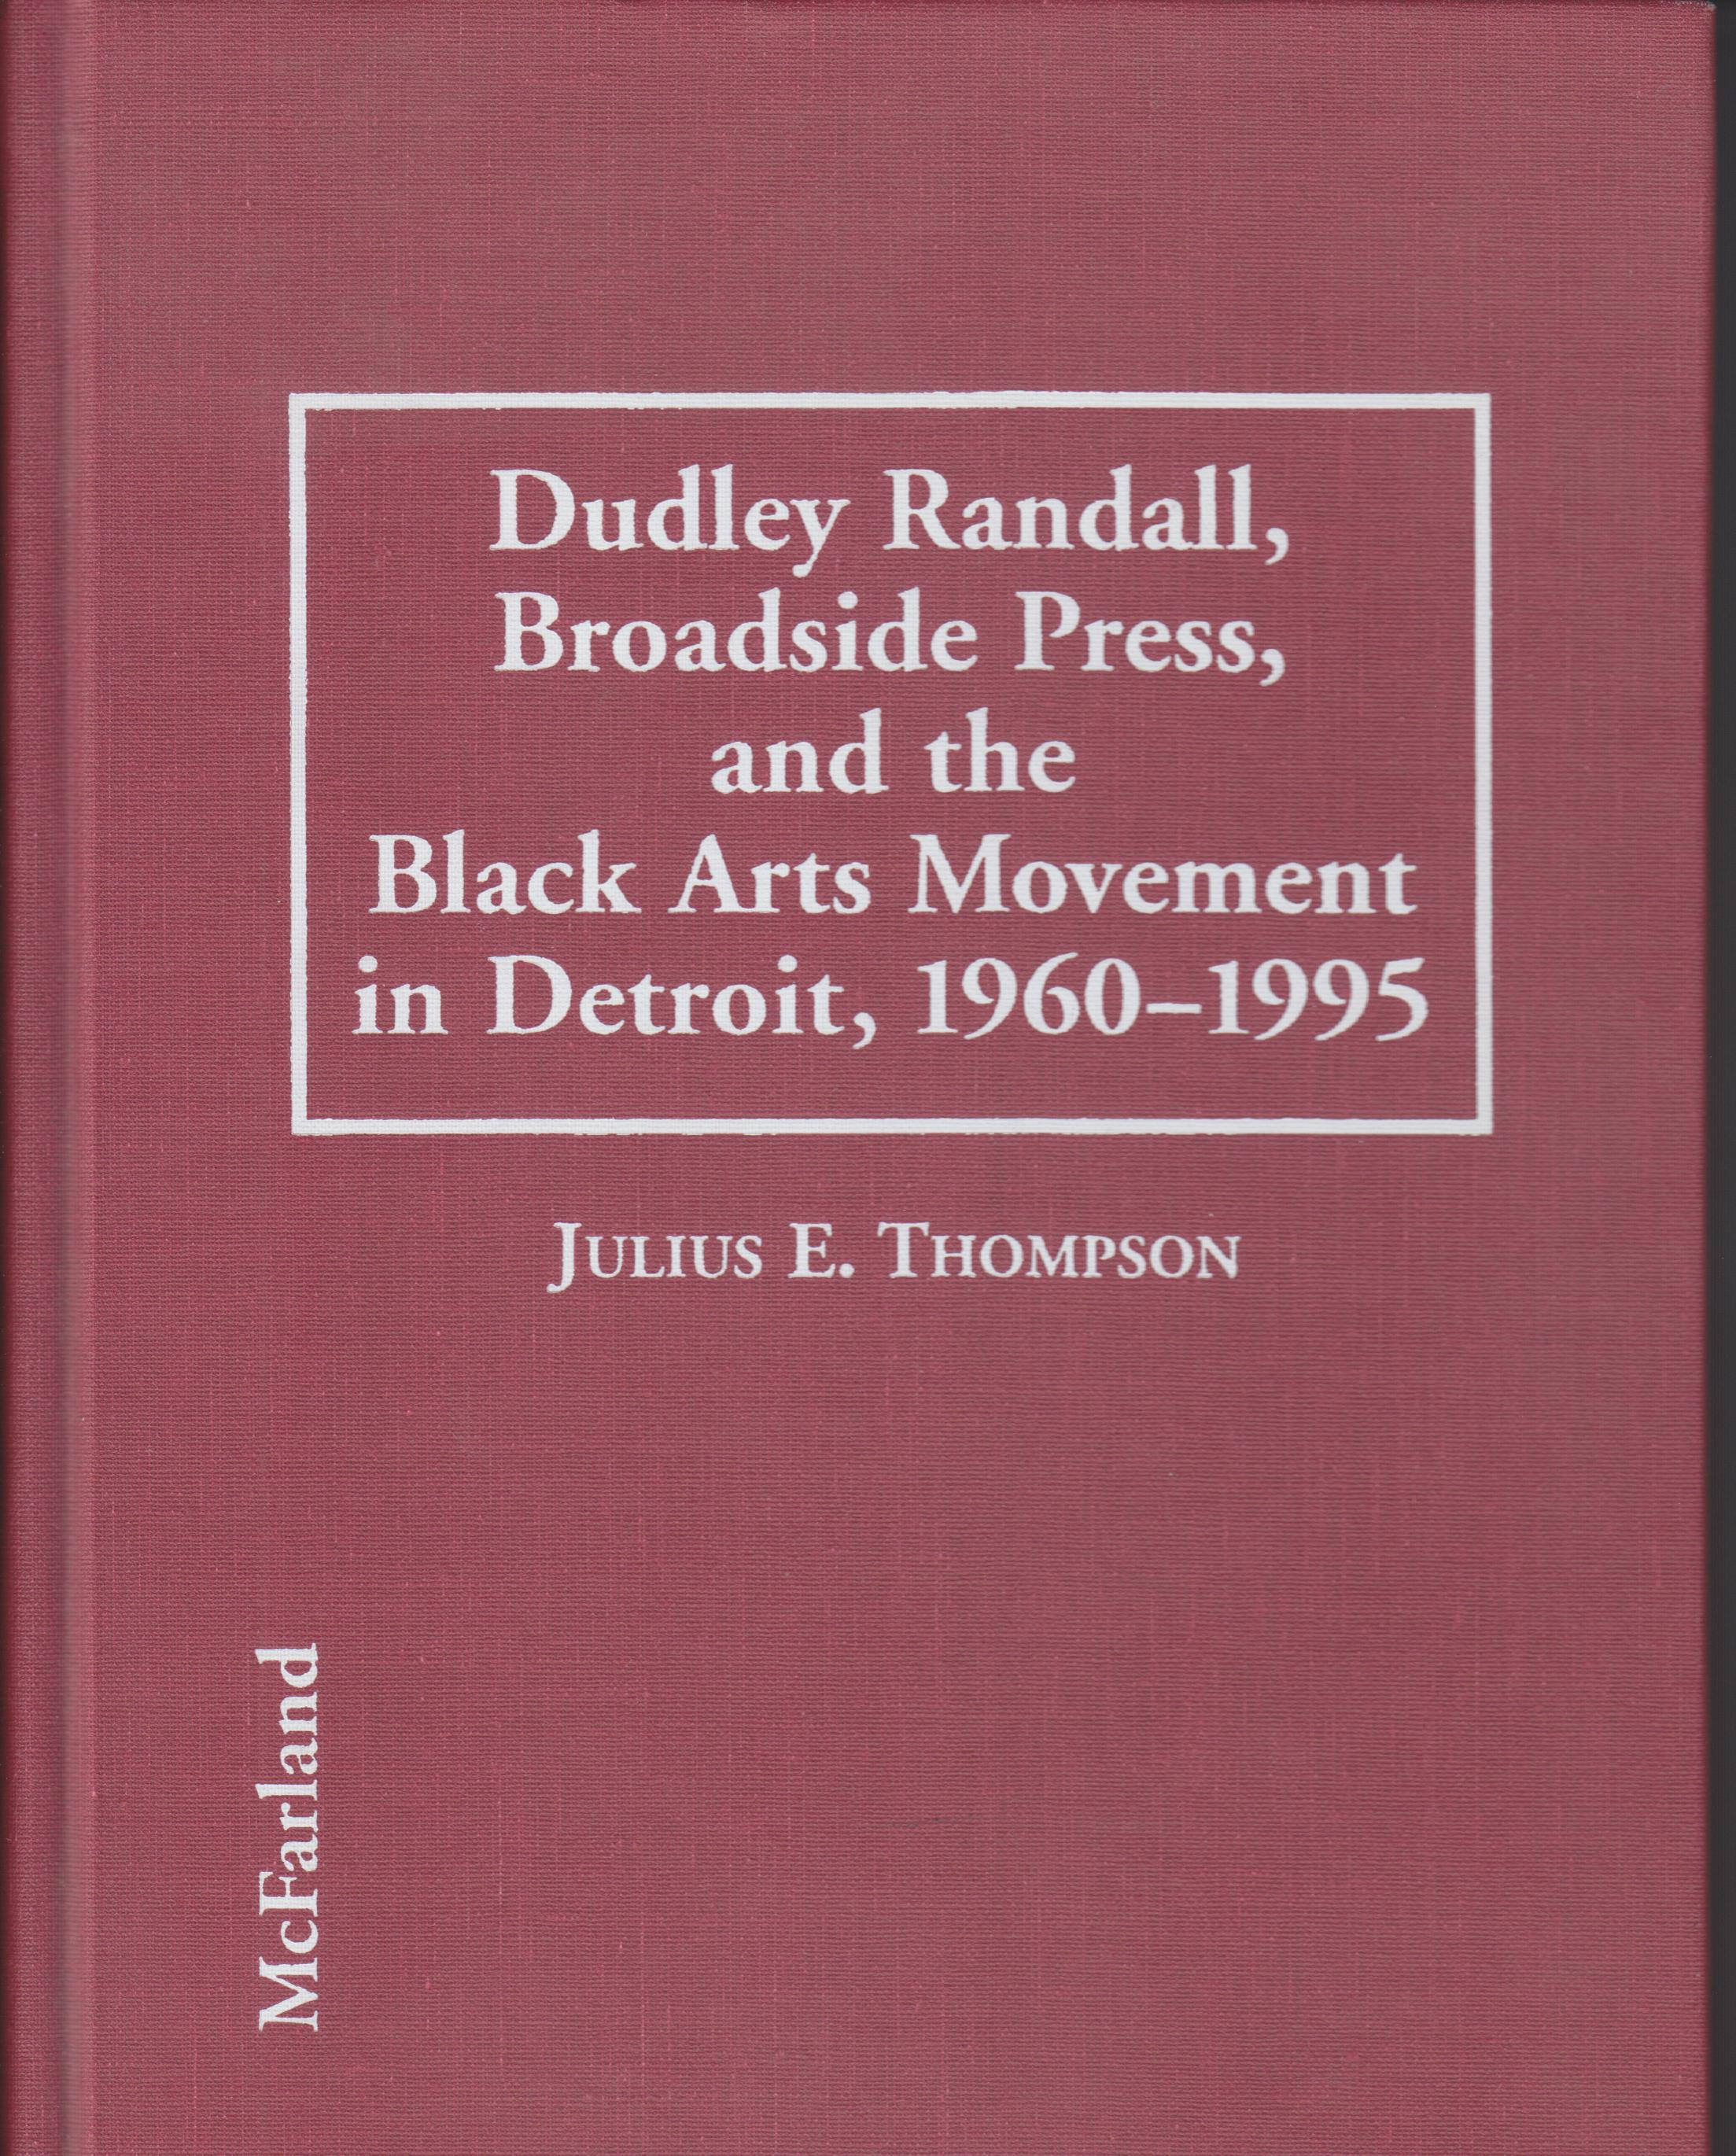 Image for Dudley Randall, Broadside Press, and the Black Arts Movement in Detroit, 1960-1995